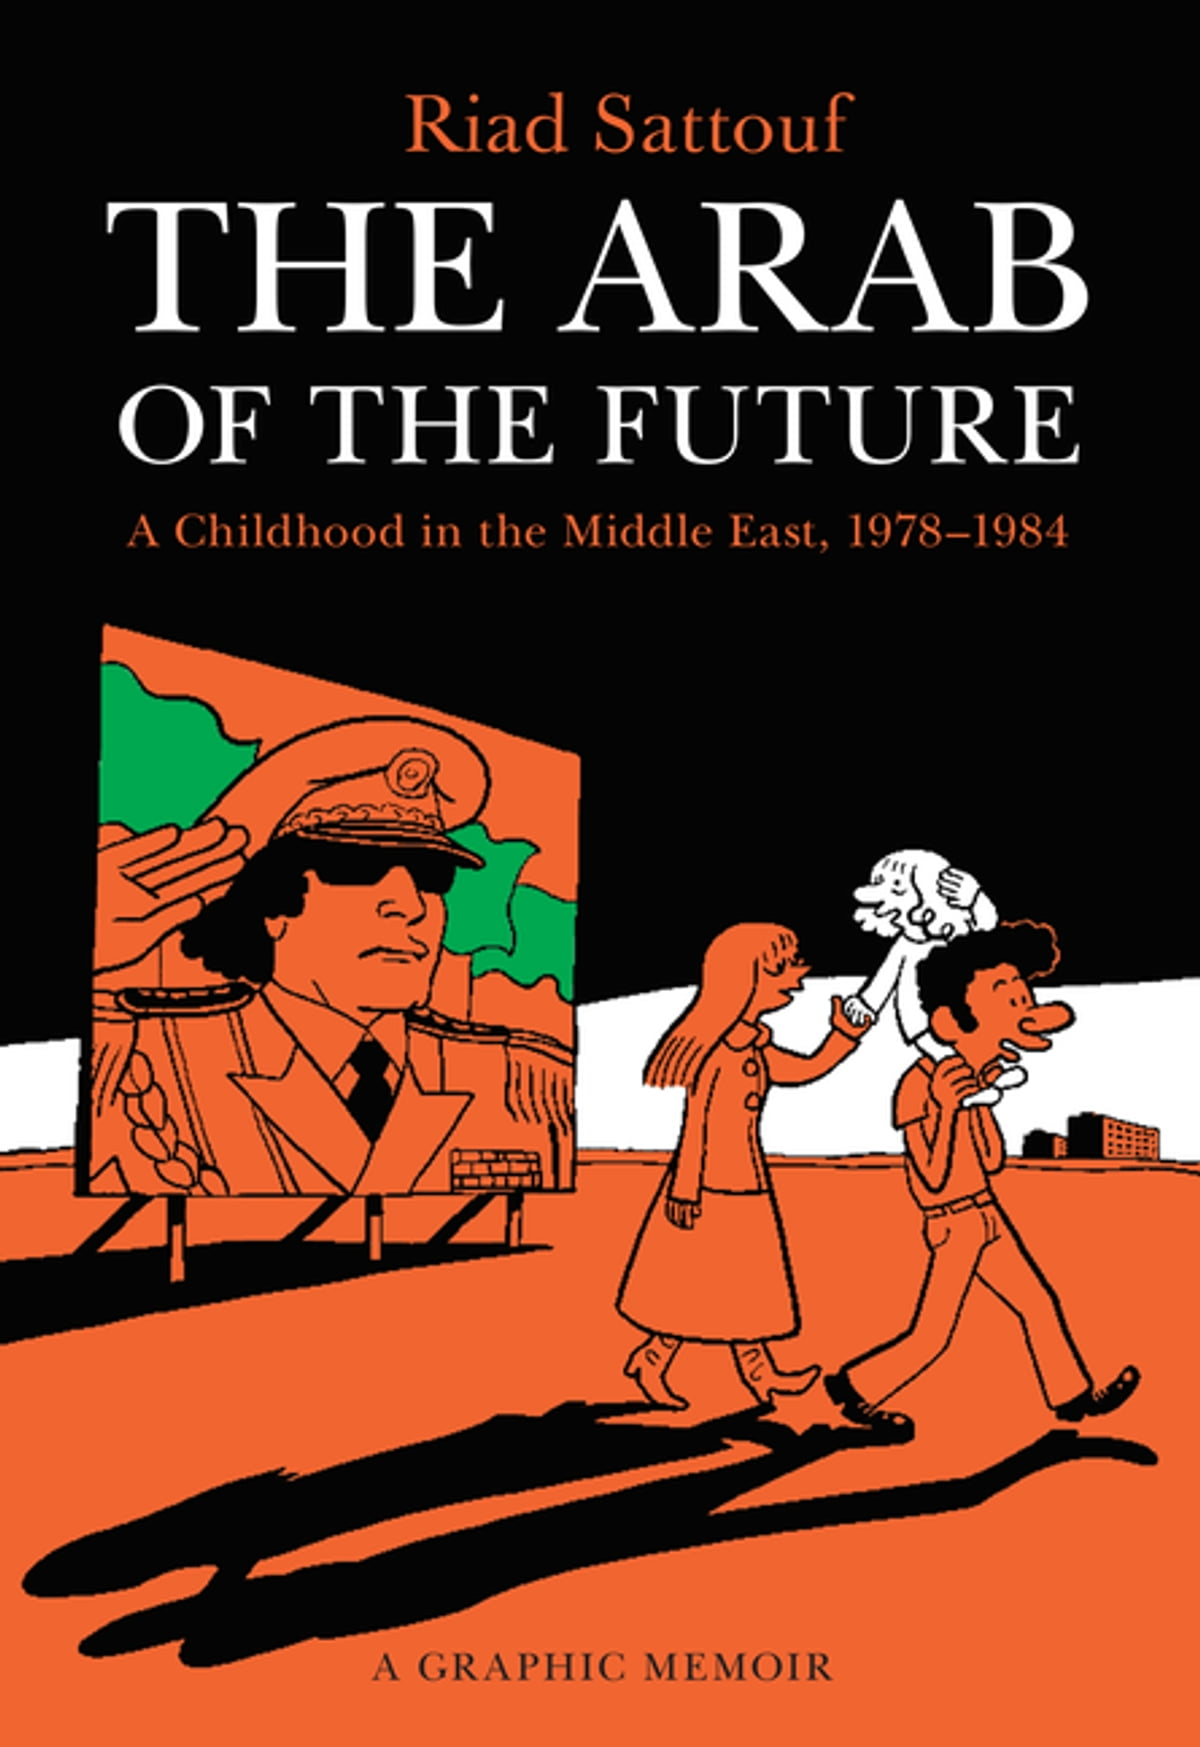 The Arab Of The Future Ebook By Riad Sattouf  9781627797528  Rakuten Kobo